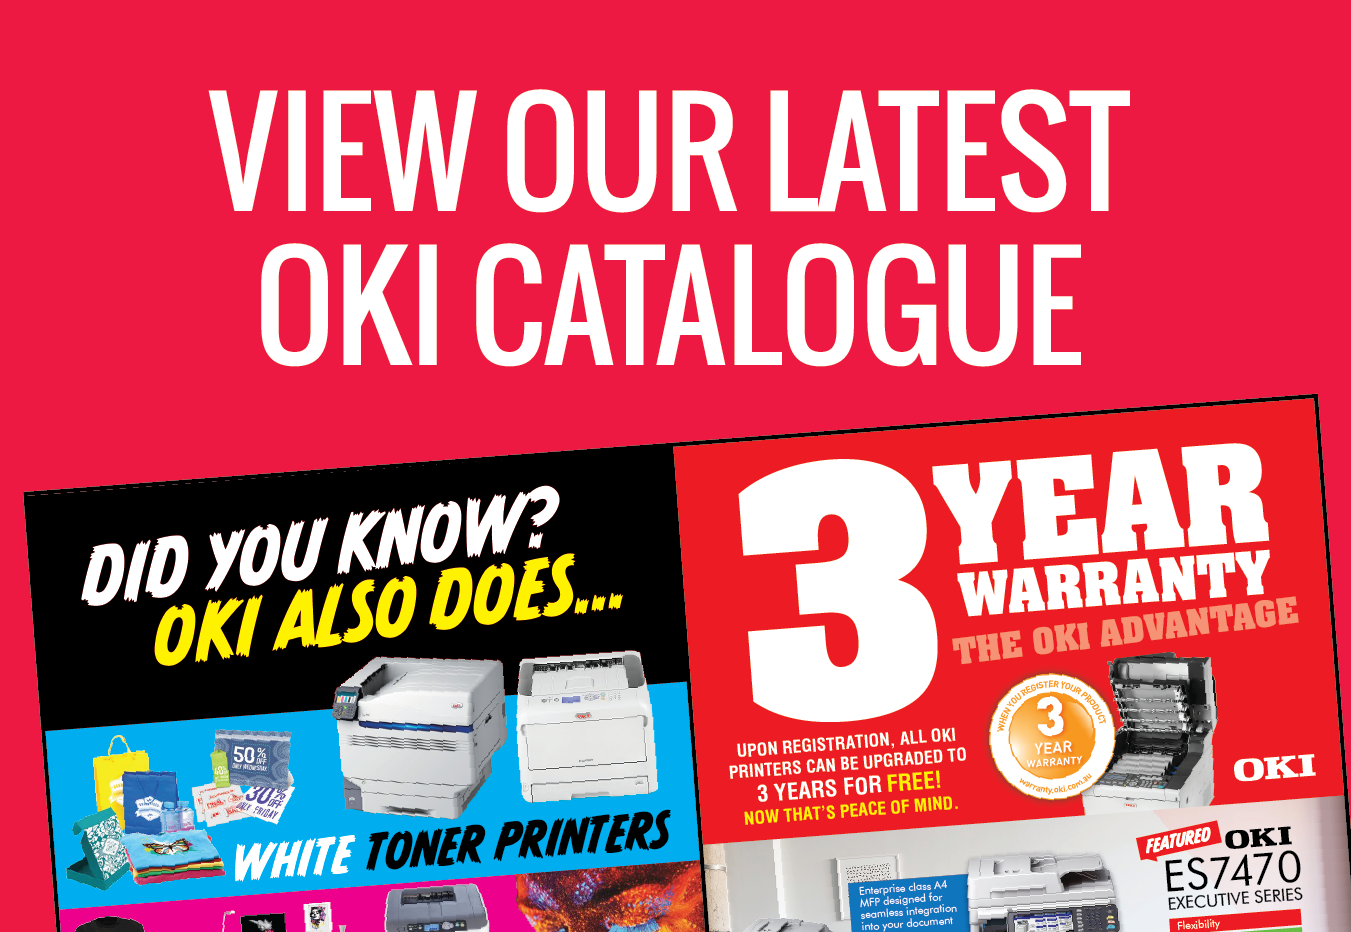 View our latest OKI catalogue